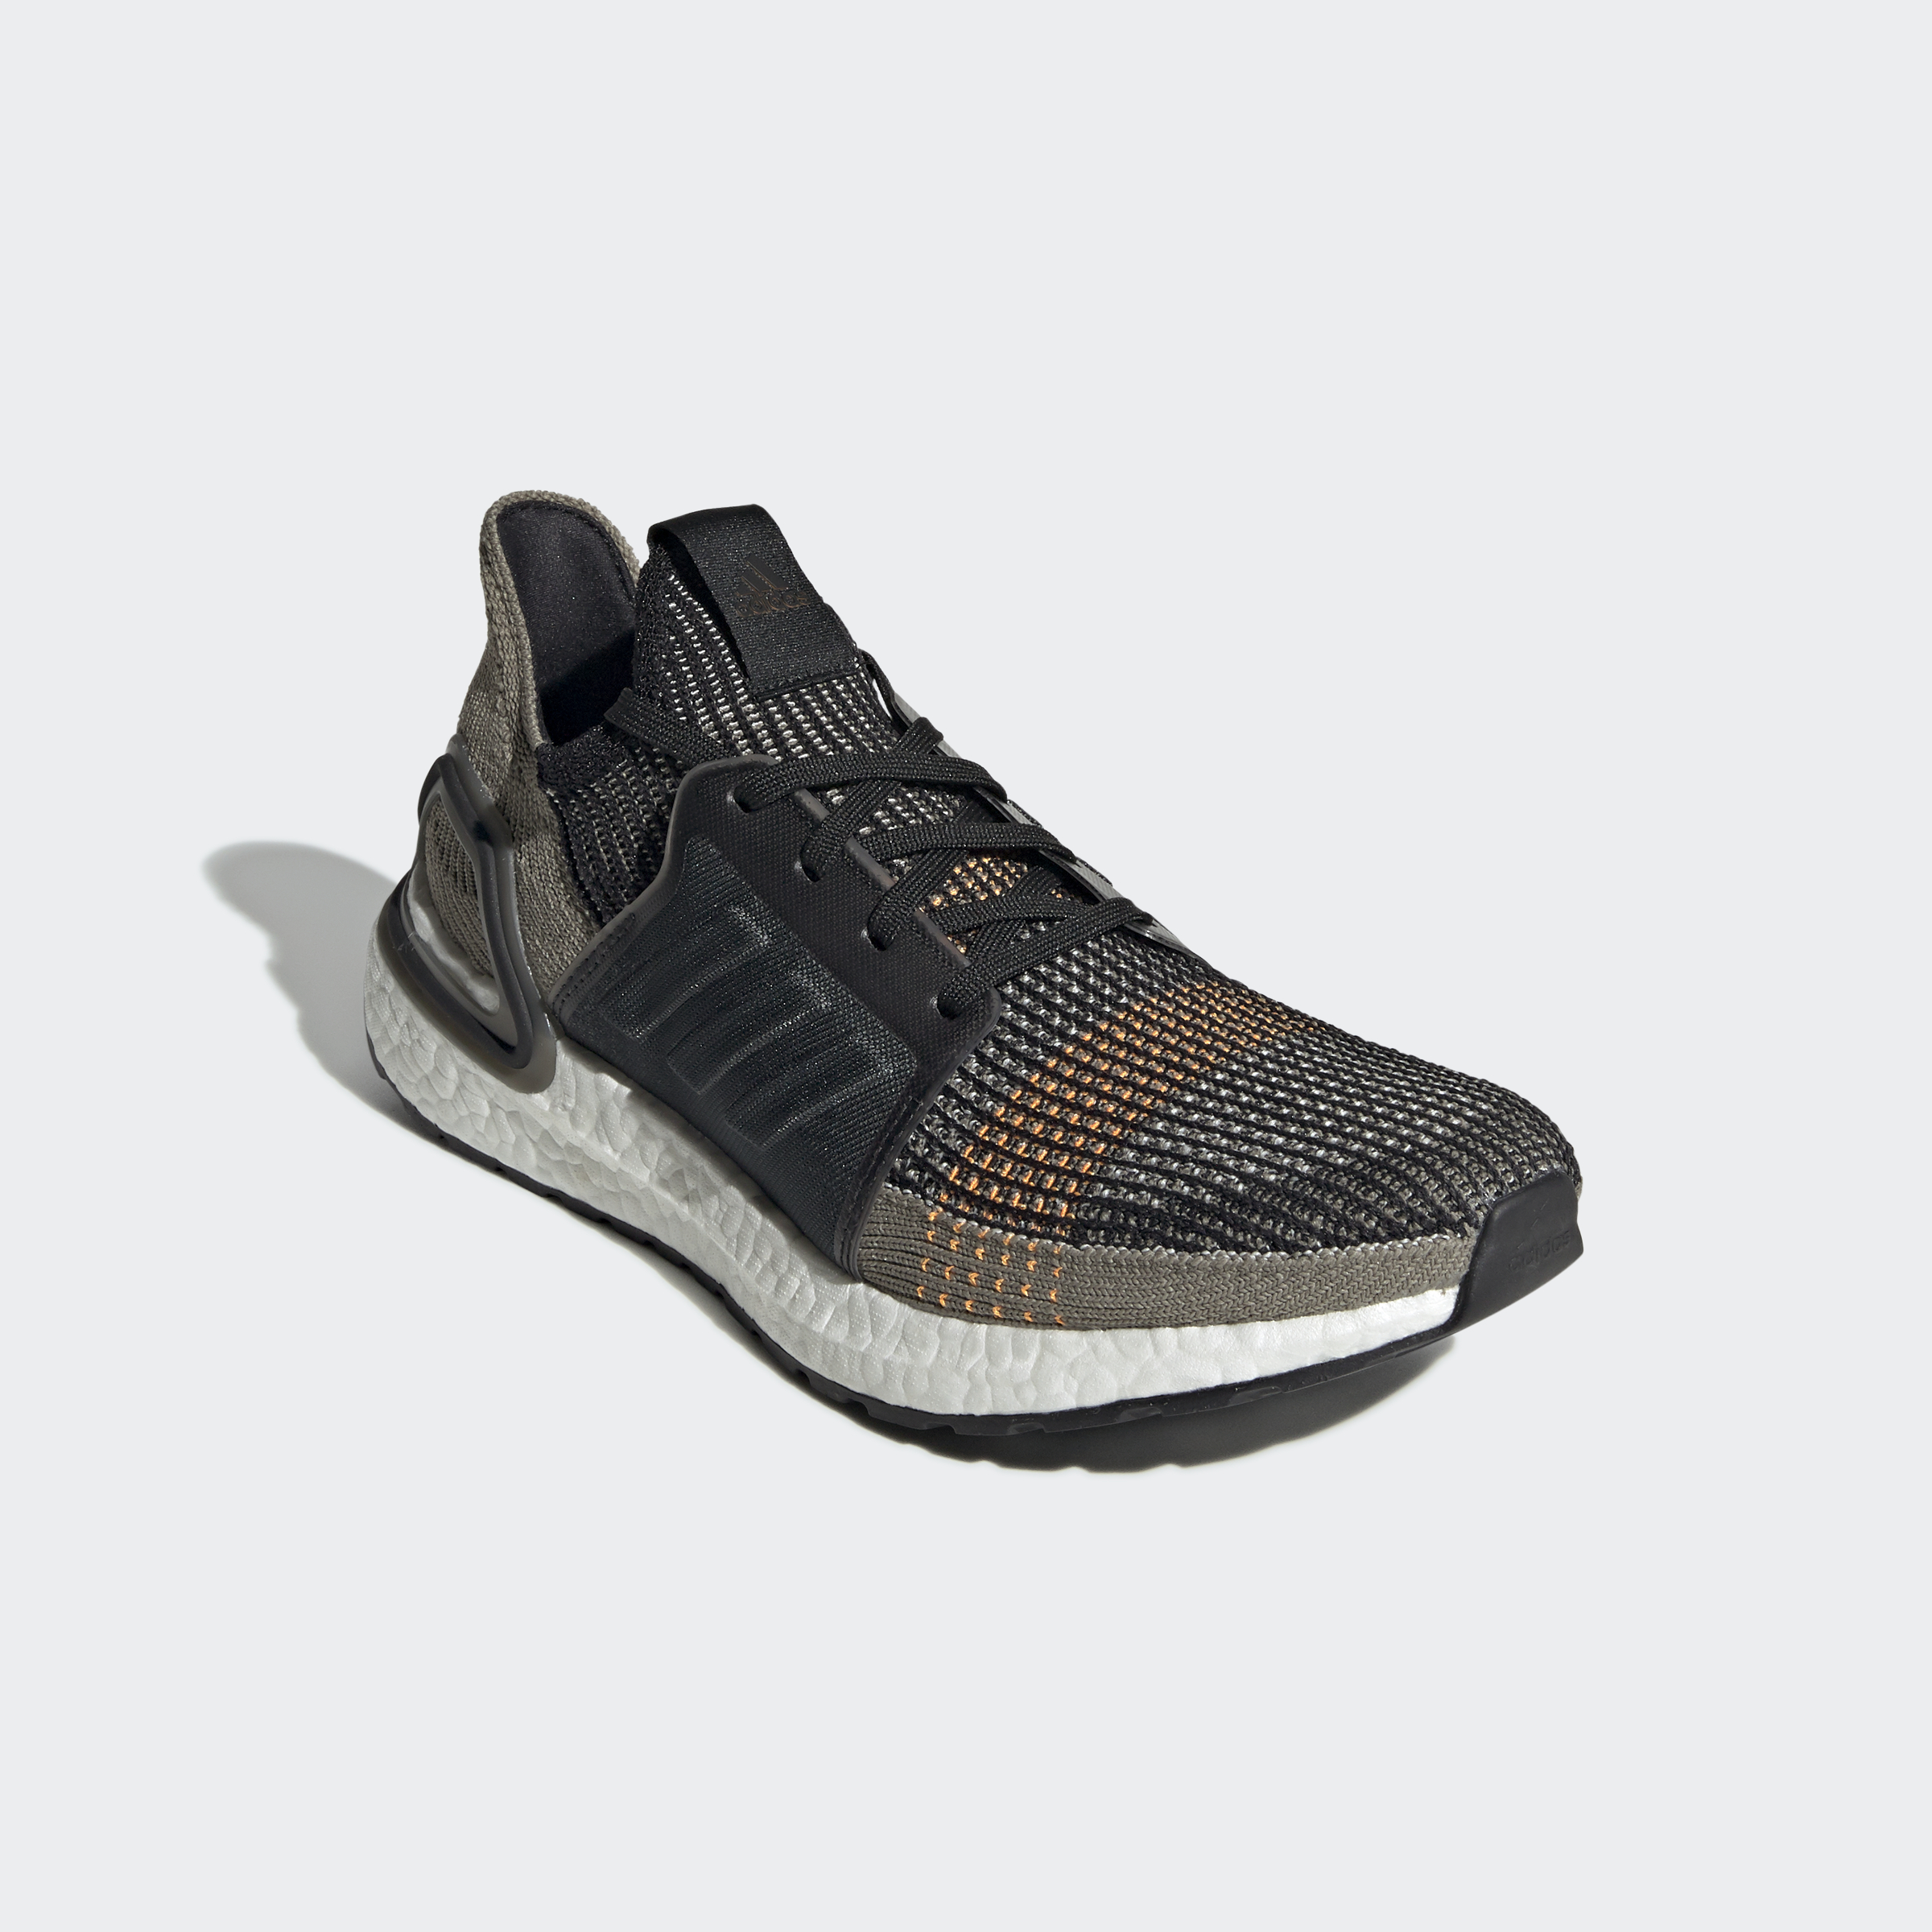 adidas-Ultraboost-19-Shoes-Athletic-amp-Sneakers thumbnail 87